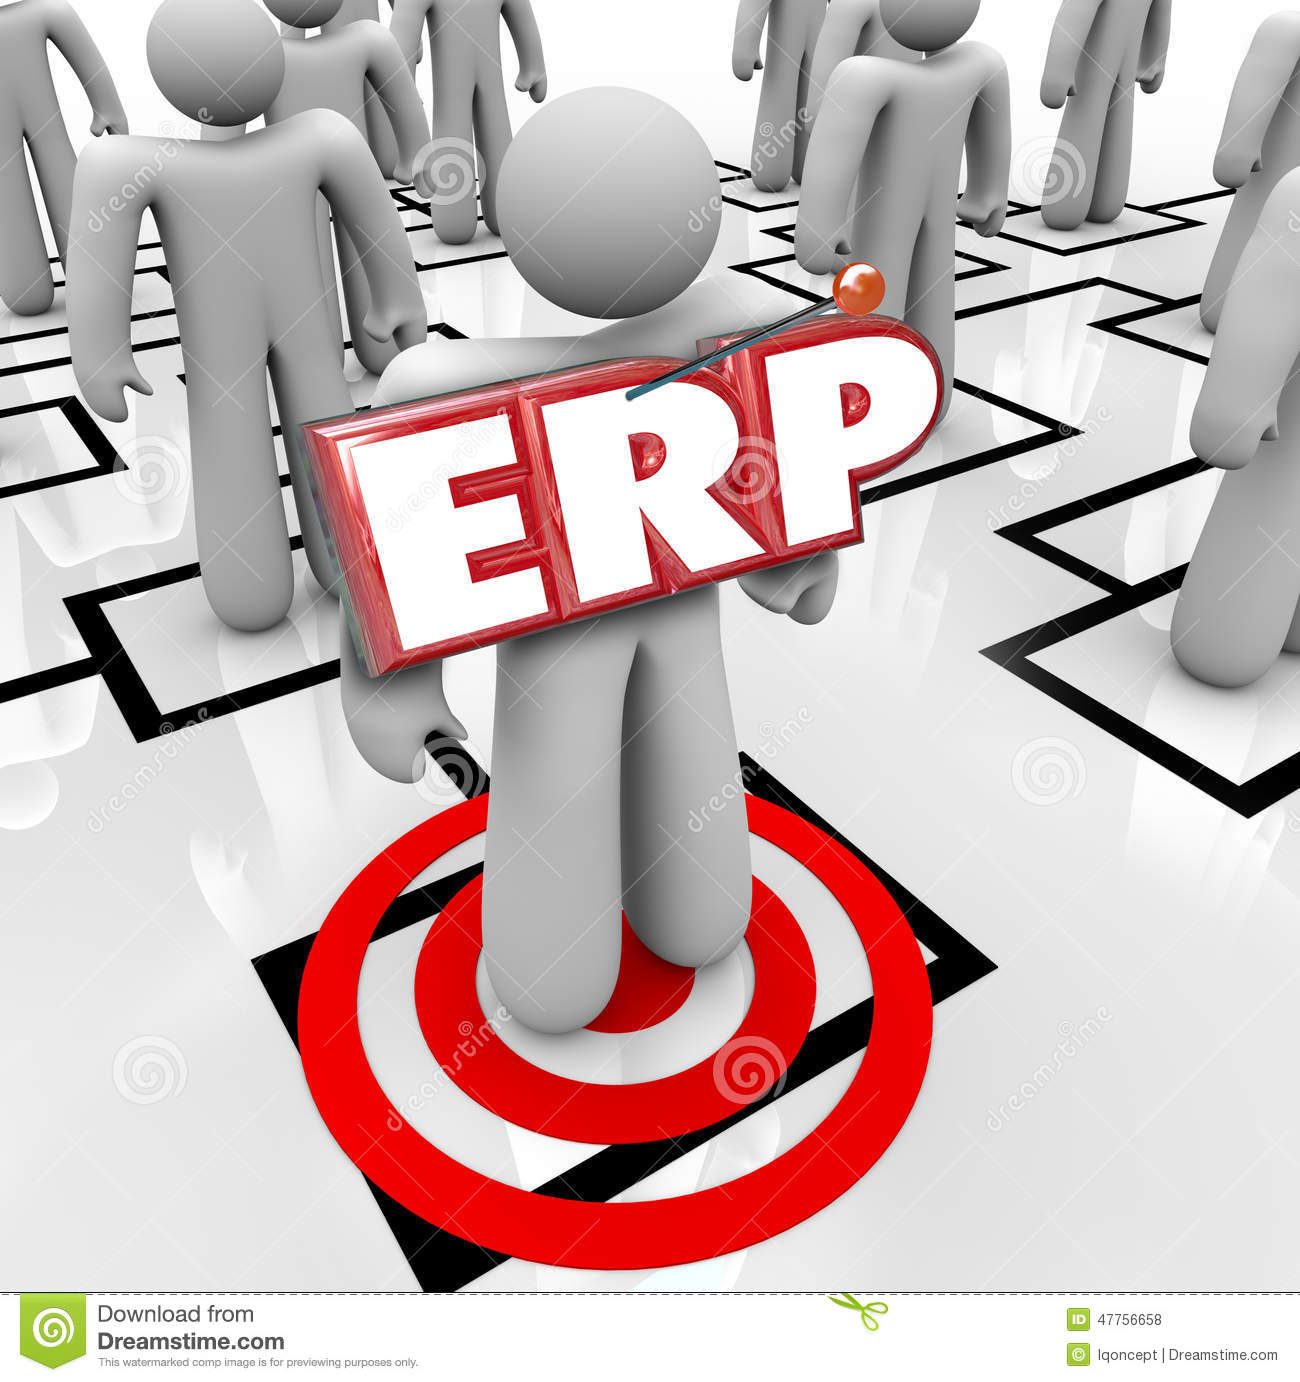 Erp enterprise resource planning company business program for Planning your dreams org